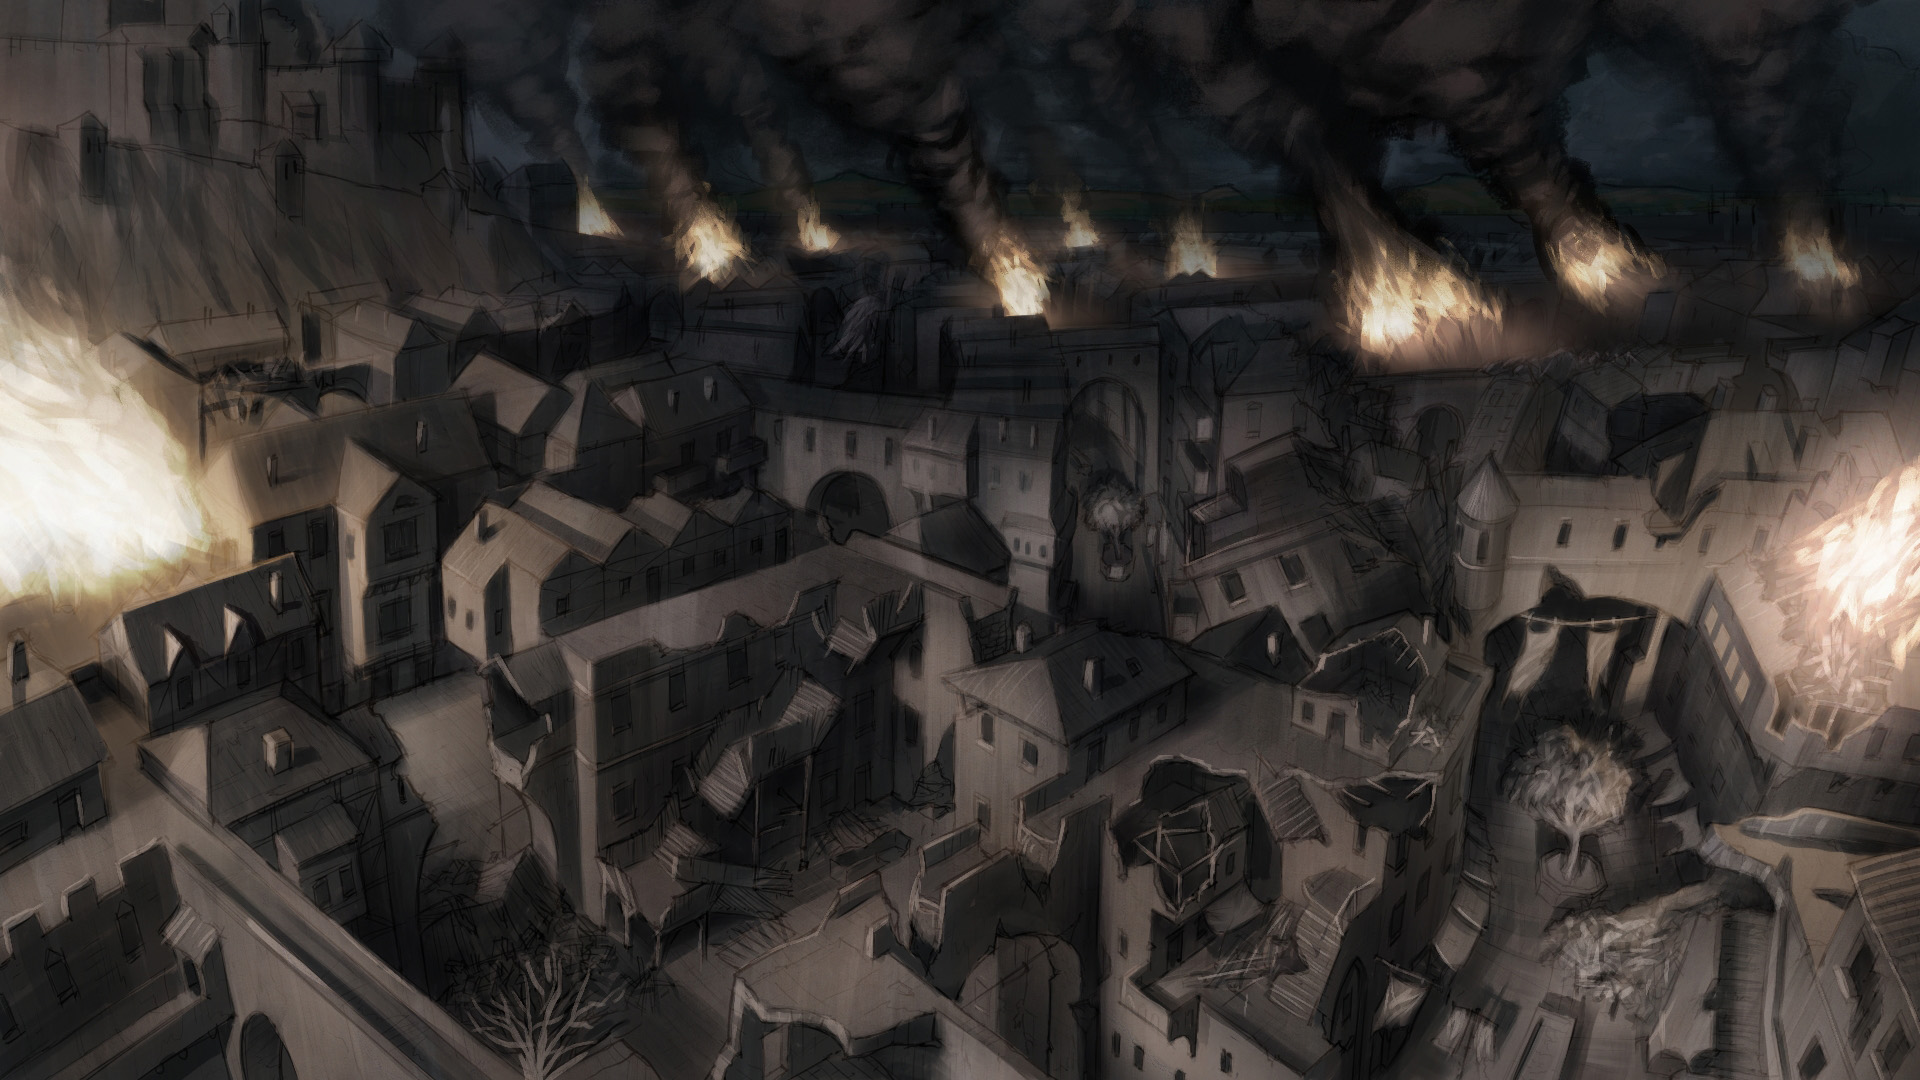 Cartea Mortii Ruined_Medieval_City_Level_by_mikemars